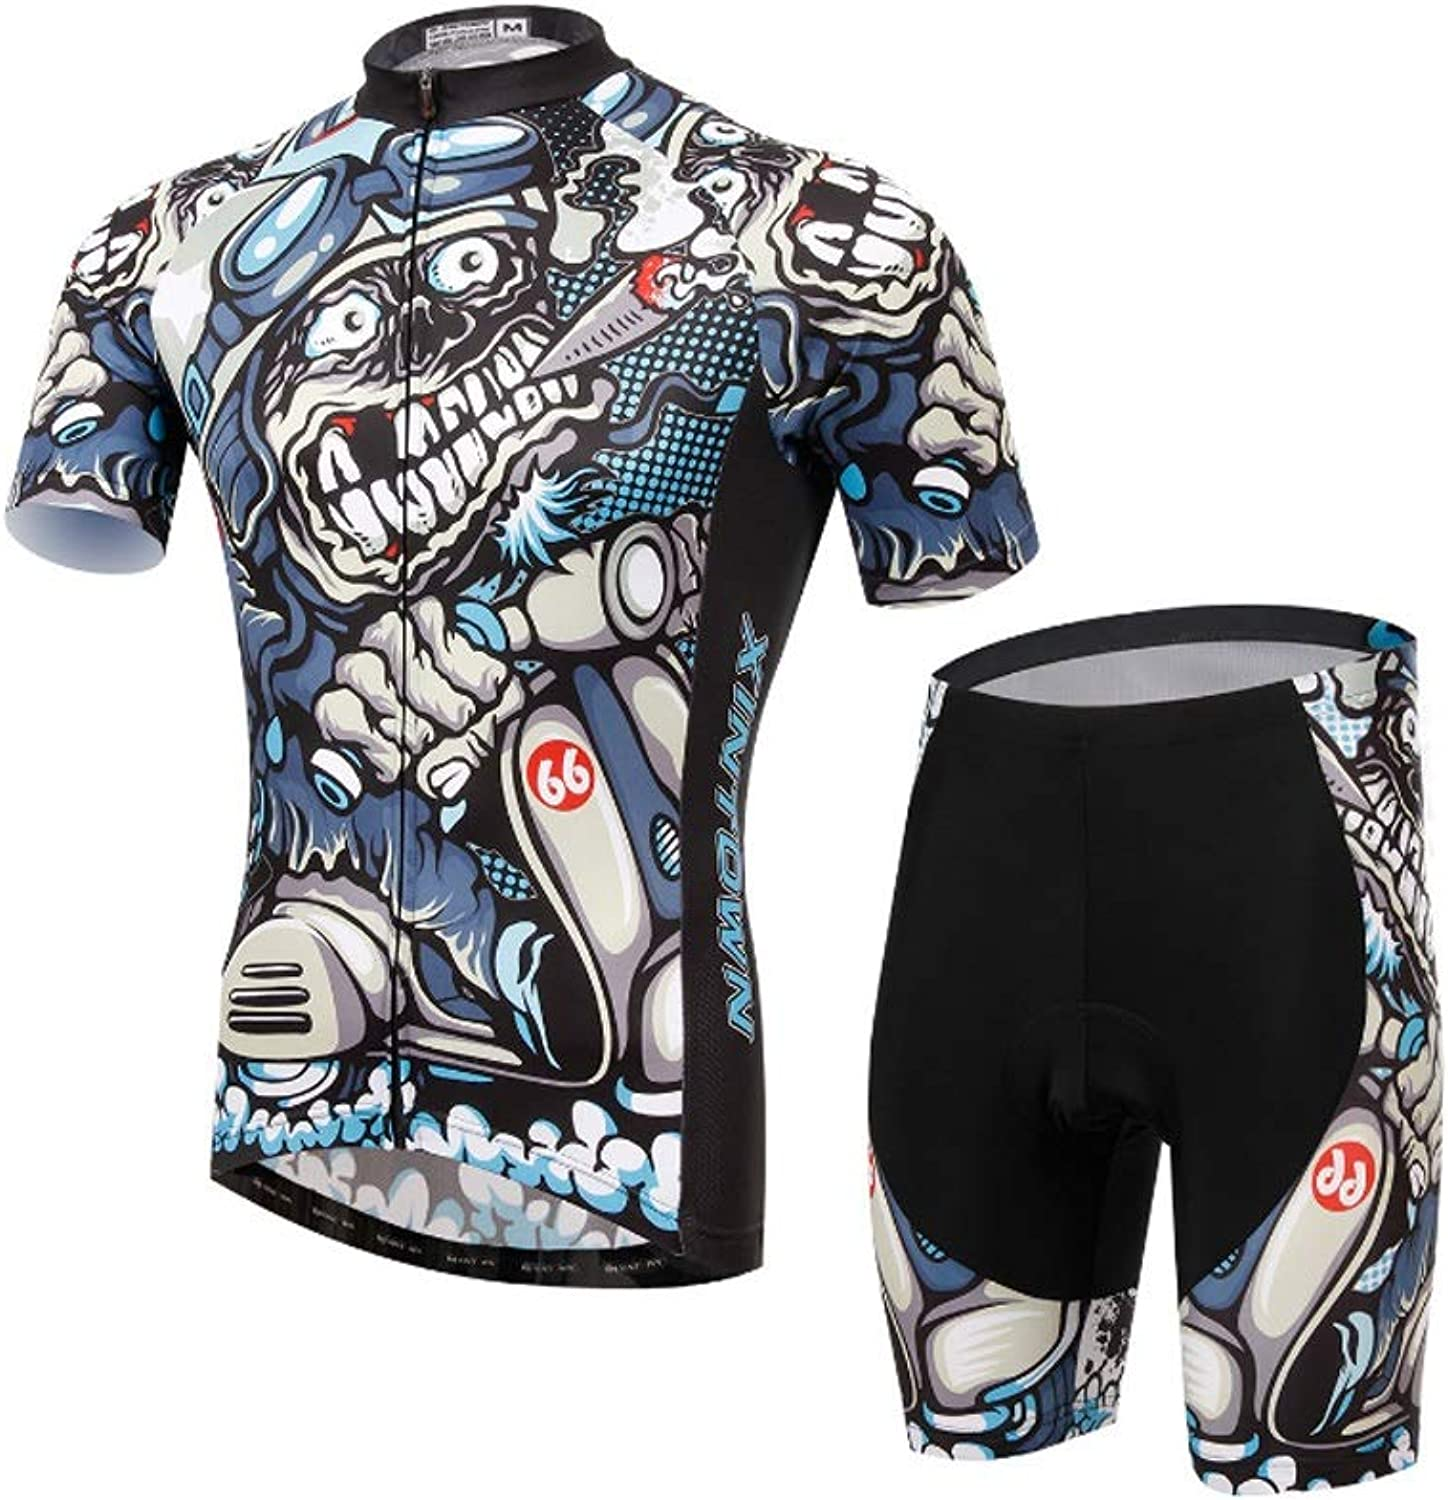 Men's Short Sleeve Breathable Cycling Jersey Outdoor Sportswear 3D Padded Shorts Sportswear Suit Set Breathable Quick Dry